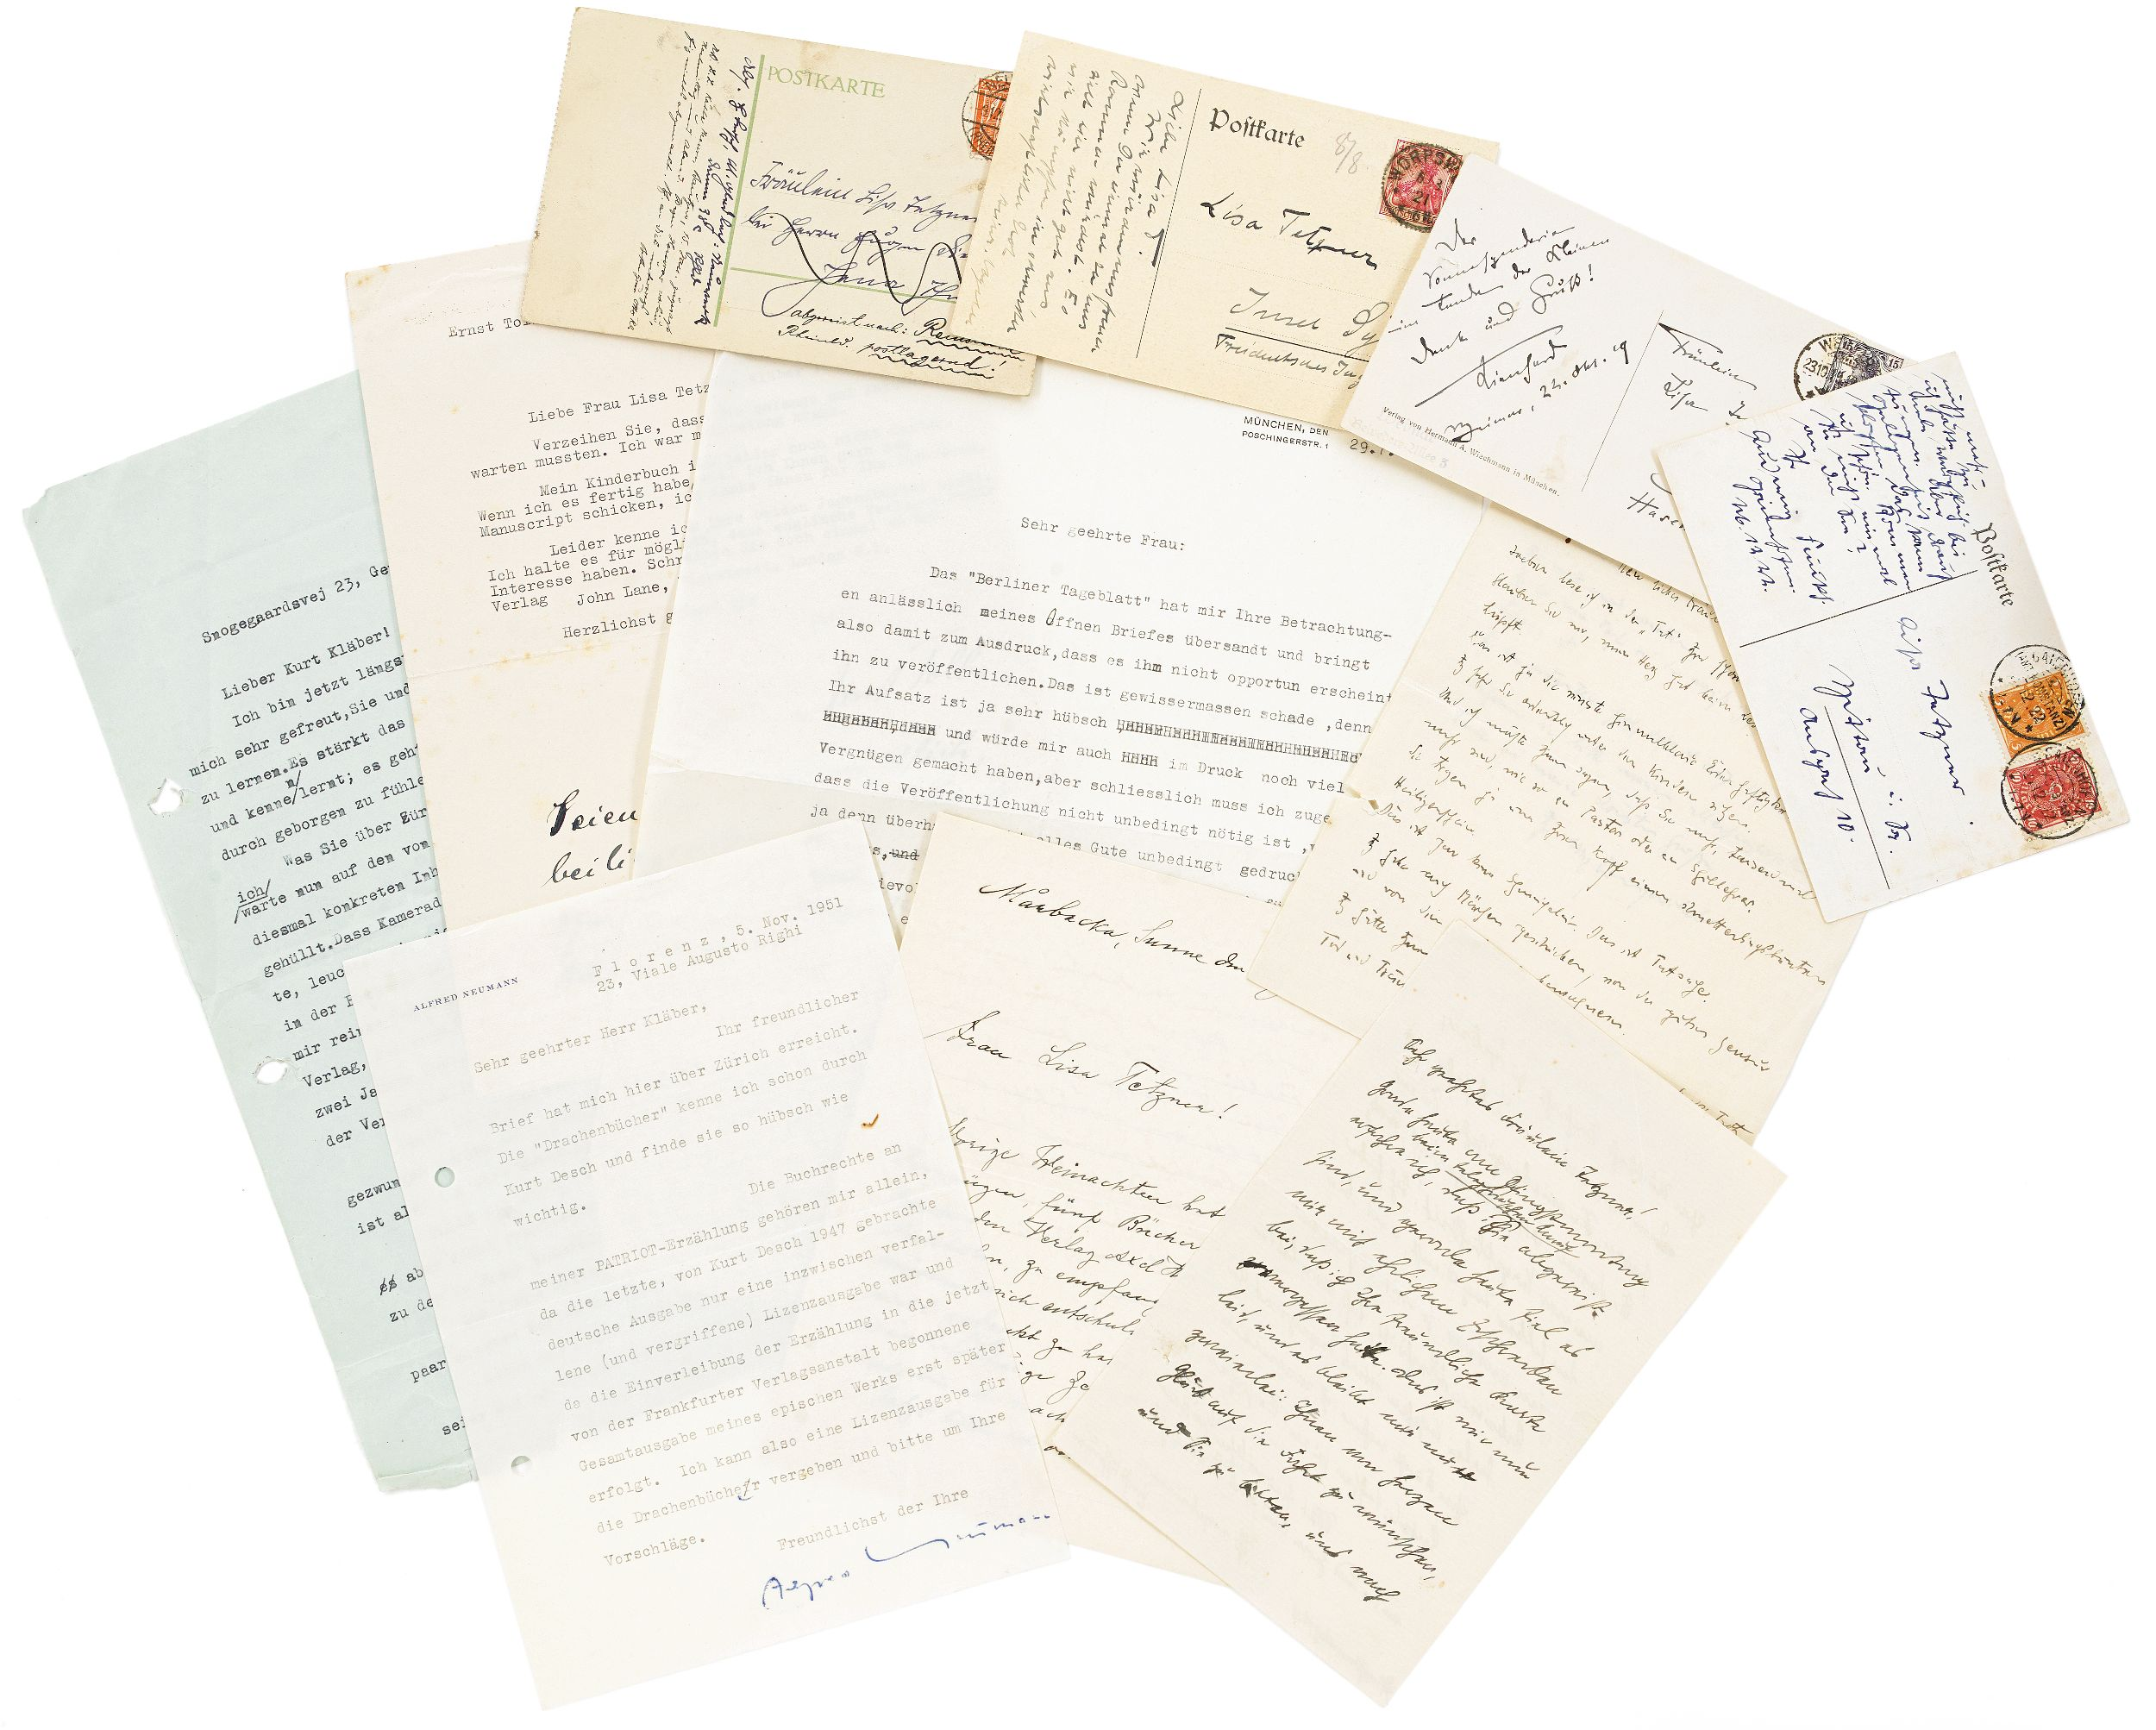 Letters by Mann to Lisa Tetzner and Kurt Kläber